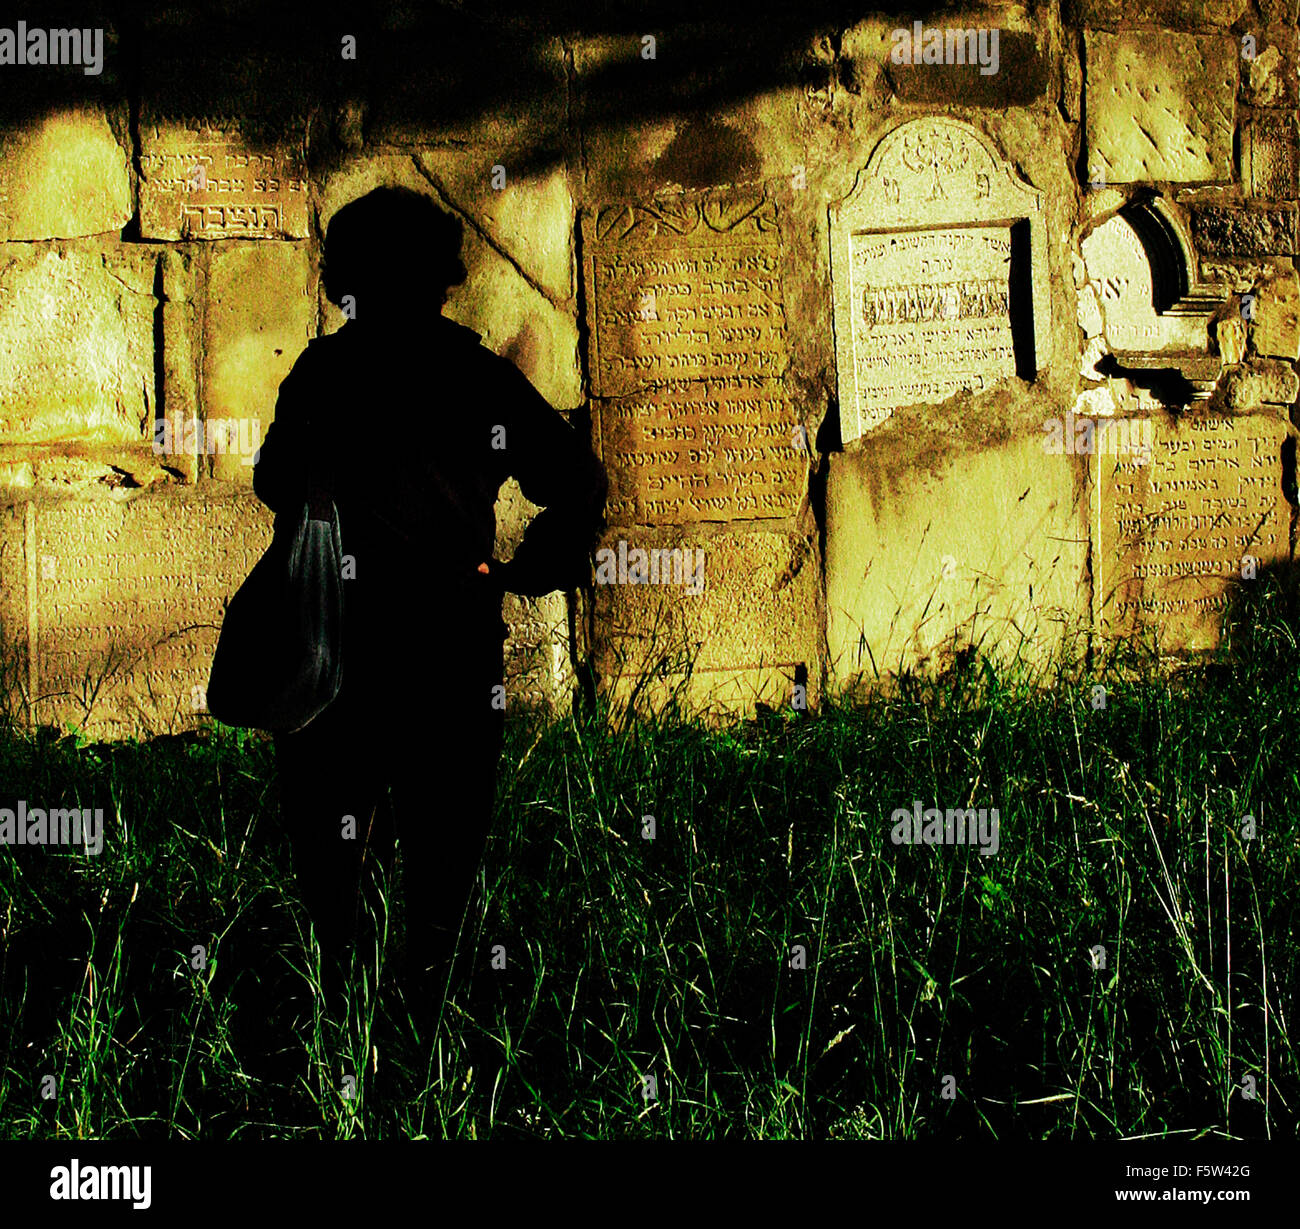 wall made of Jewish headstones in farmers field Poland - Stock Image